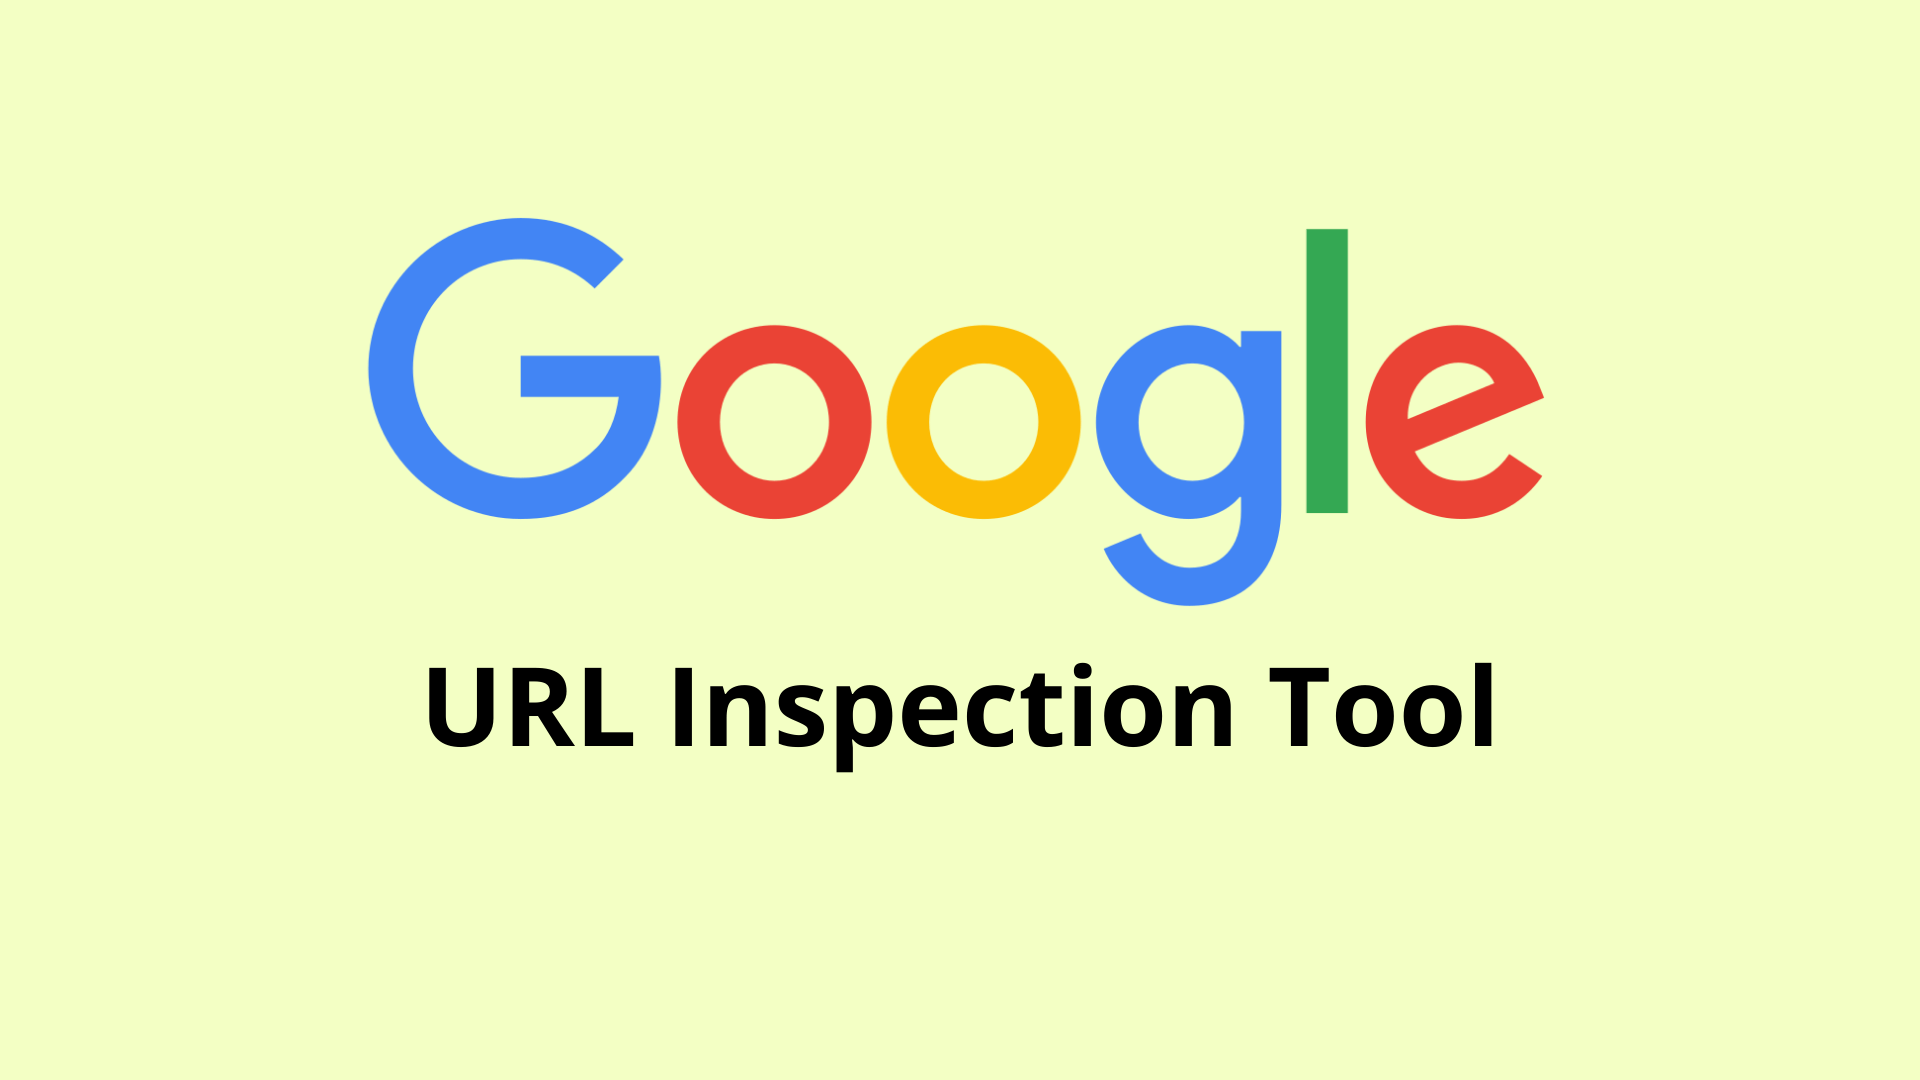 Google URL Inspection Tool